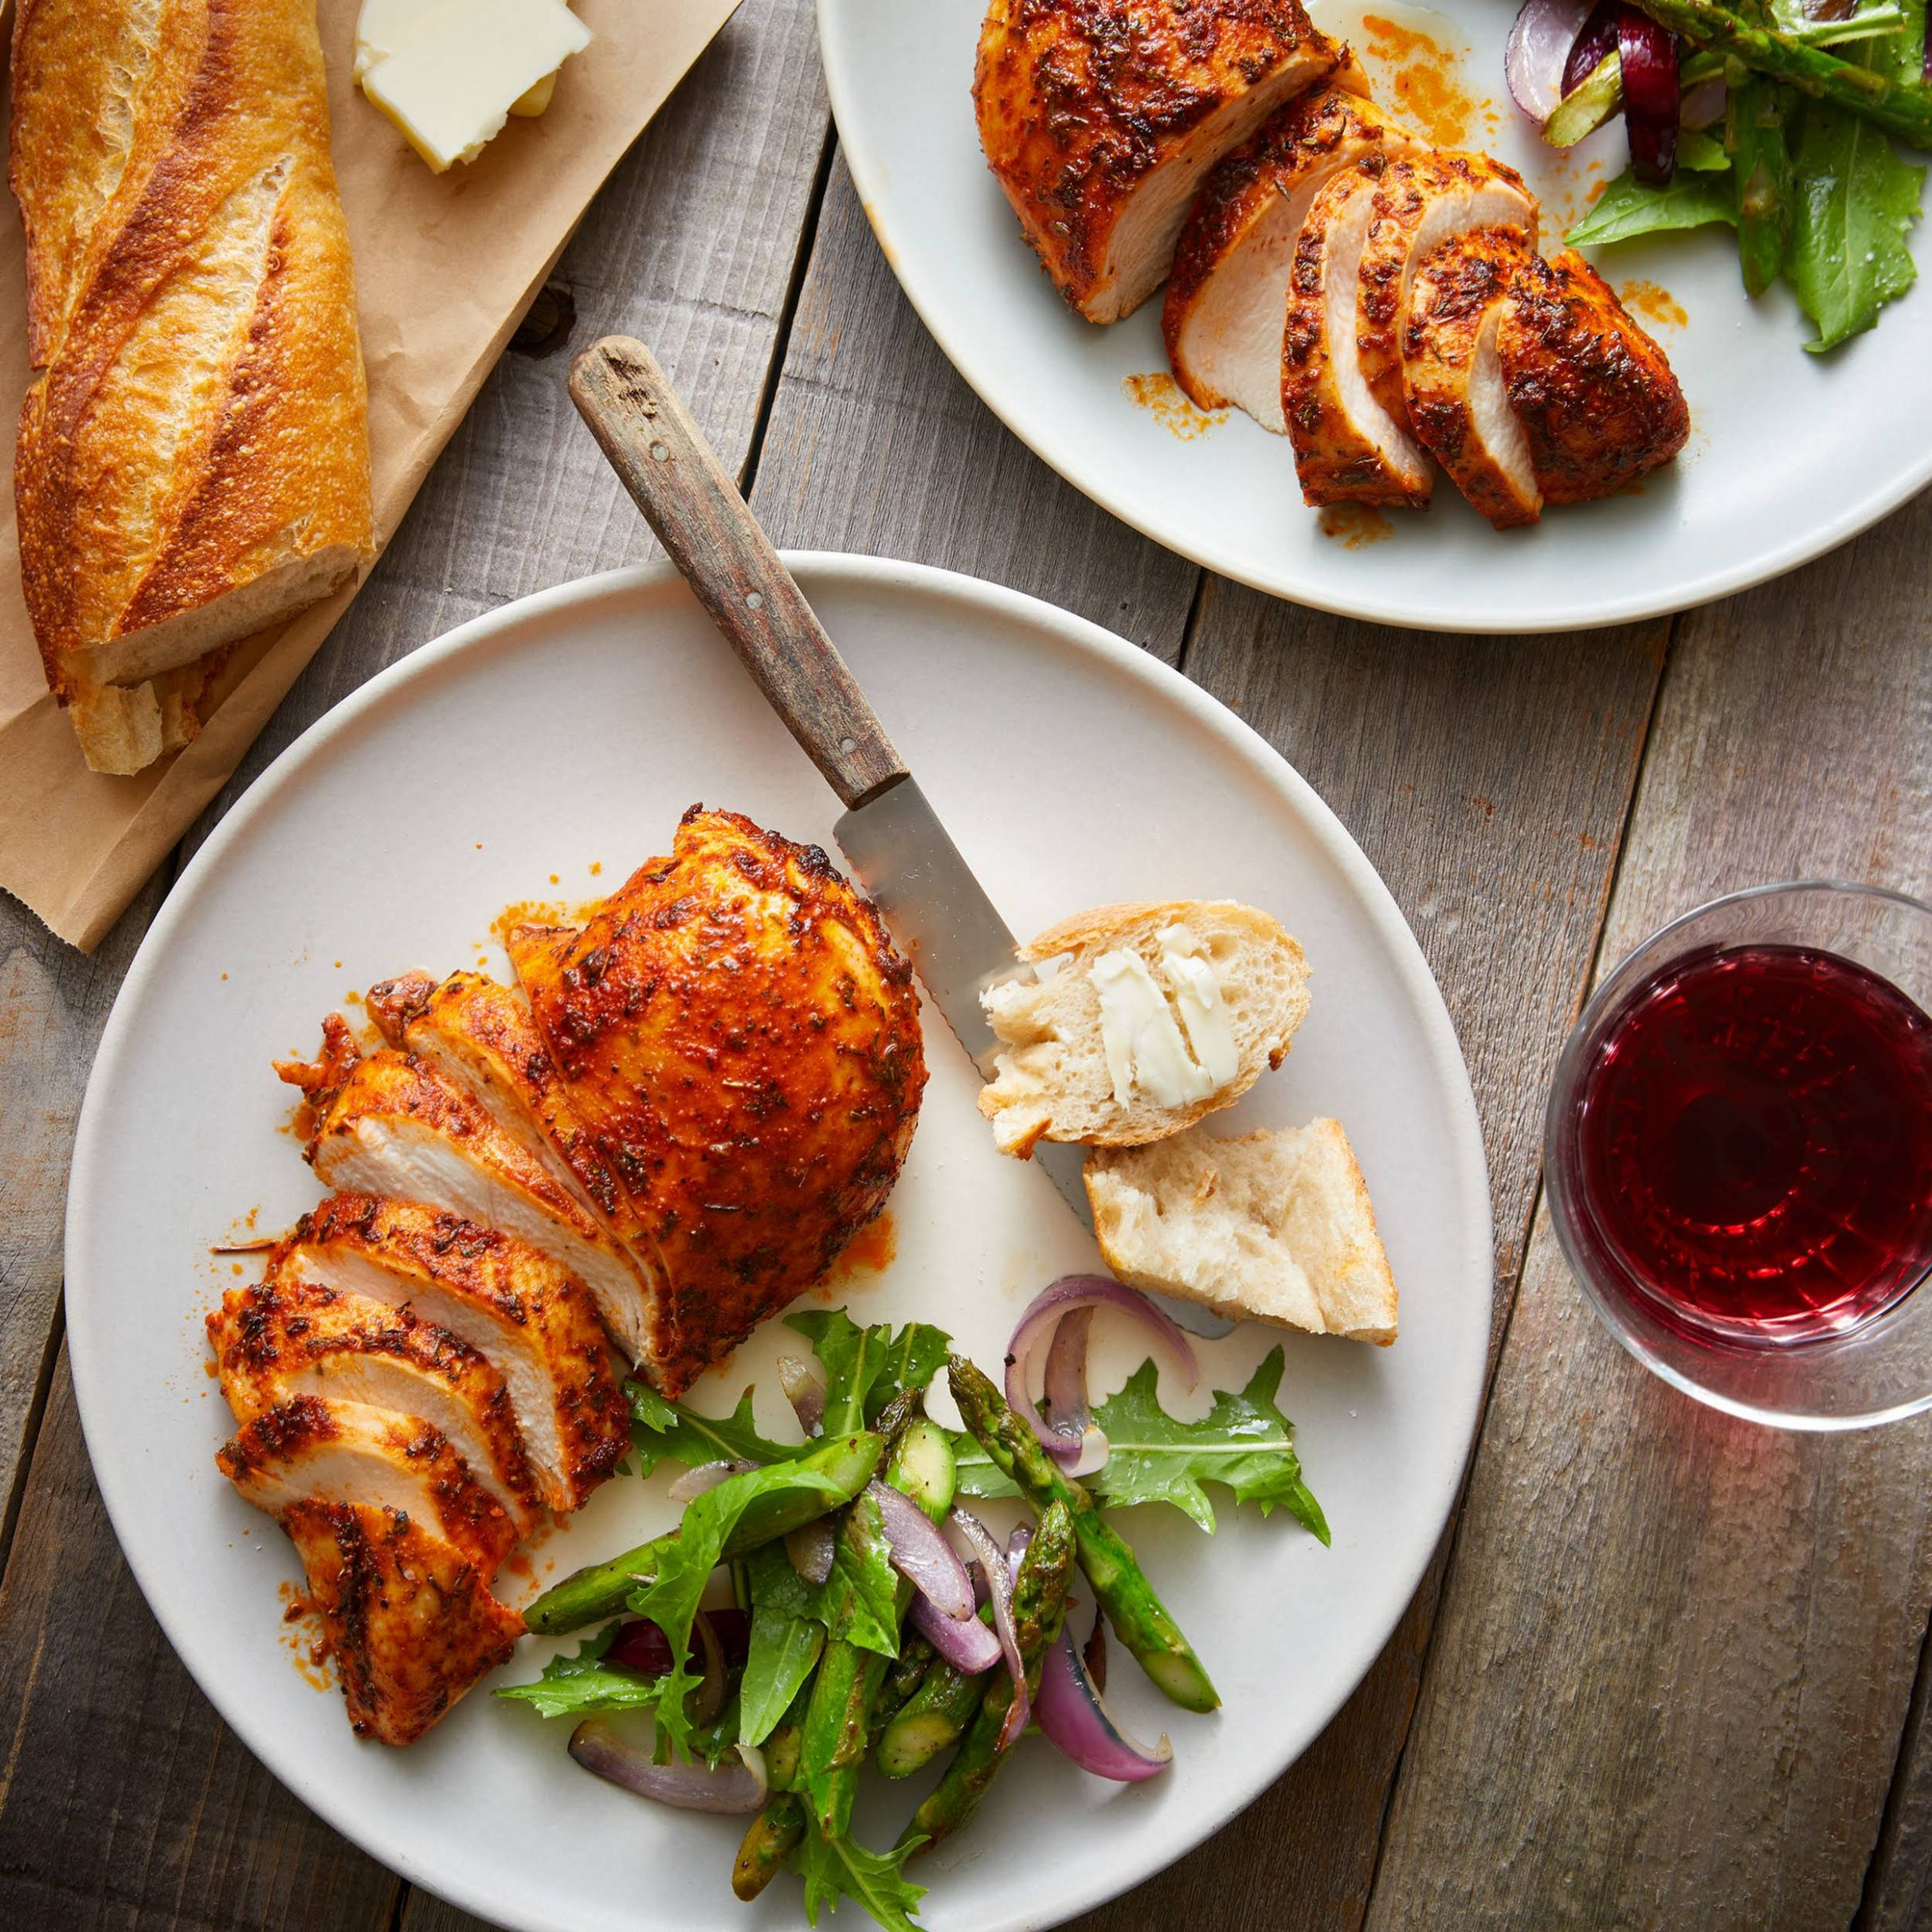 Juicy Oven-Baked Cajun Chicken Breasts - Chicken Breast Recipes Yummly